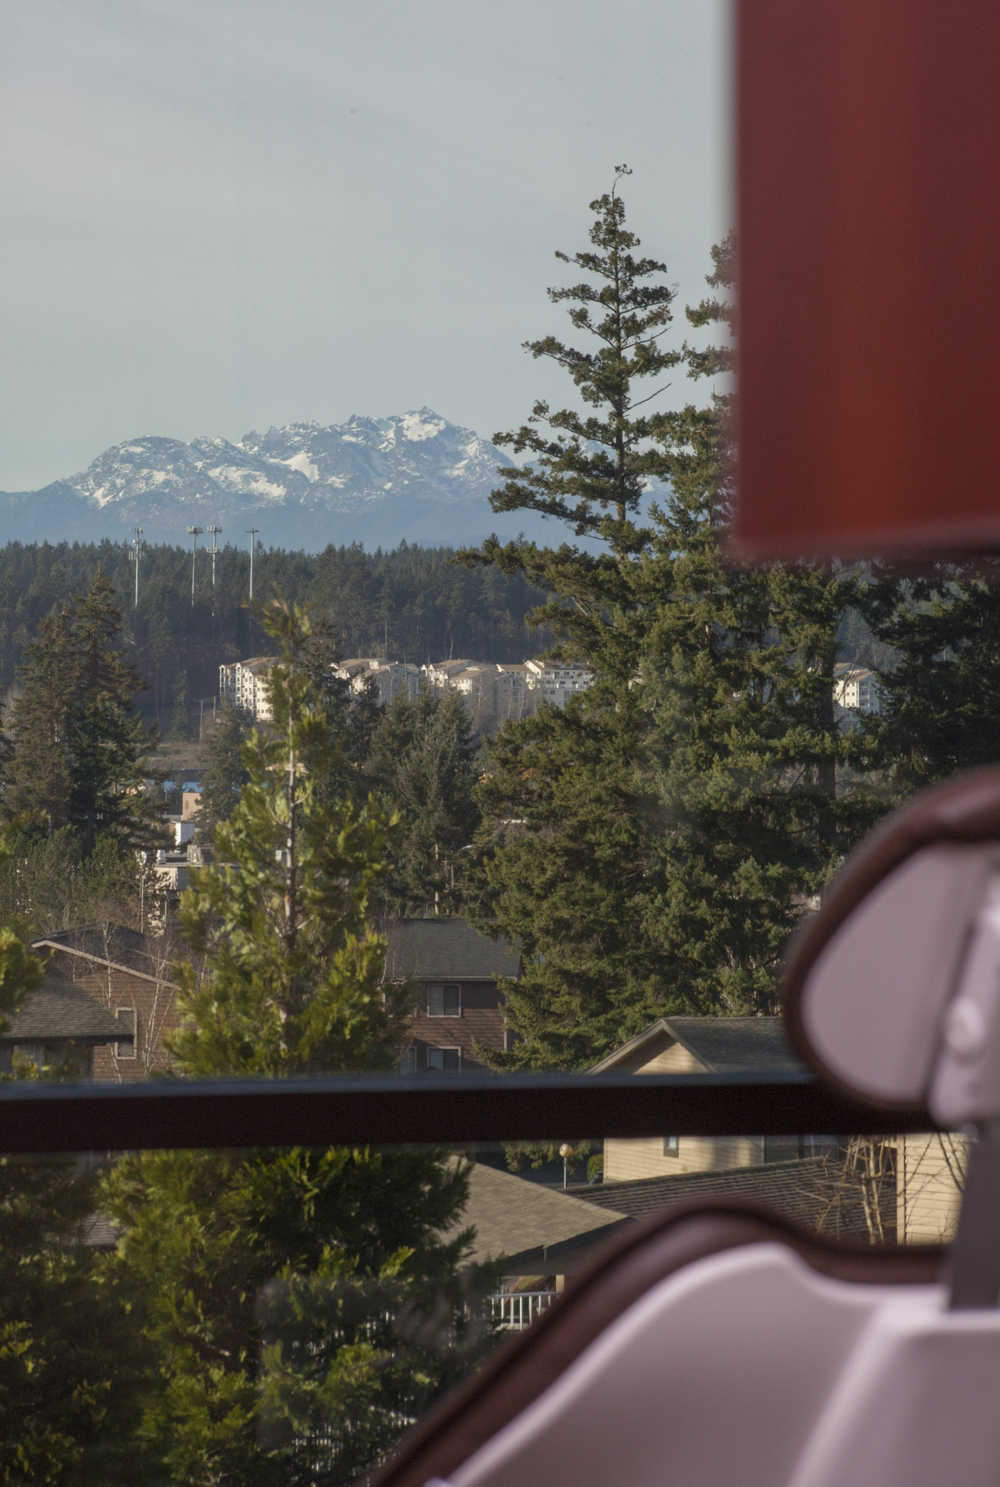 The most relaxing view of the maountains from floor to ceiling windows to enjoy during your dental appointment (Dr. Scott Stewart General Family Dentist, Silverdale dentist)